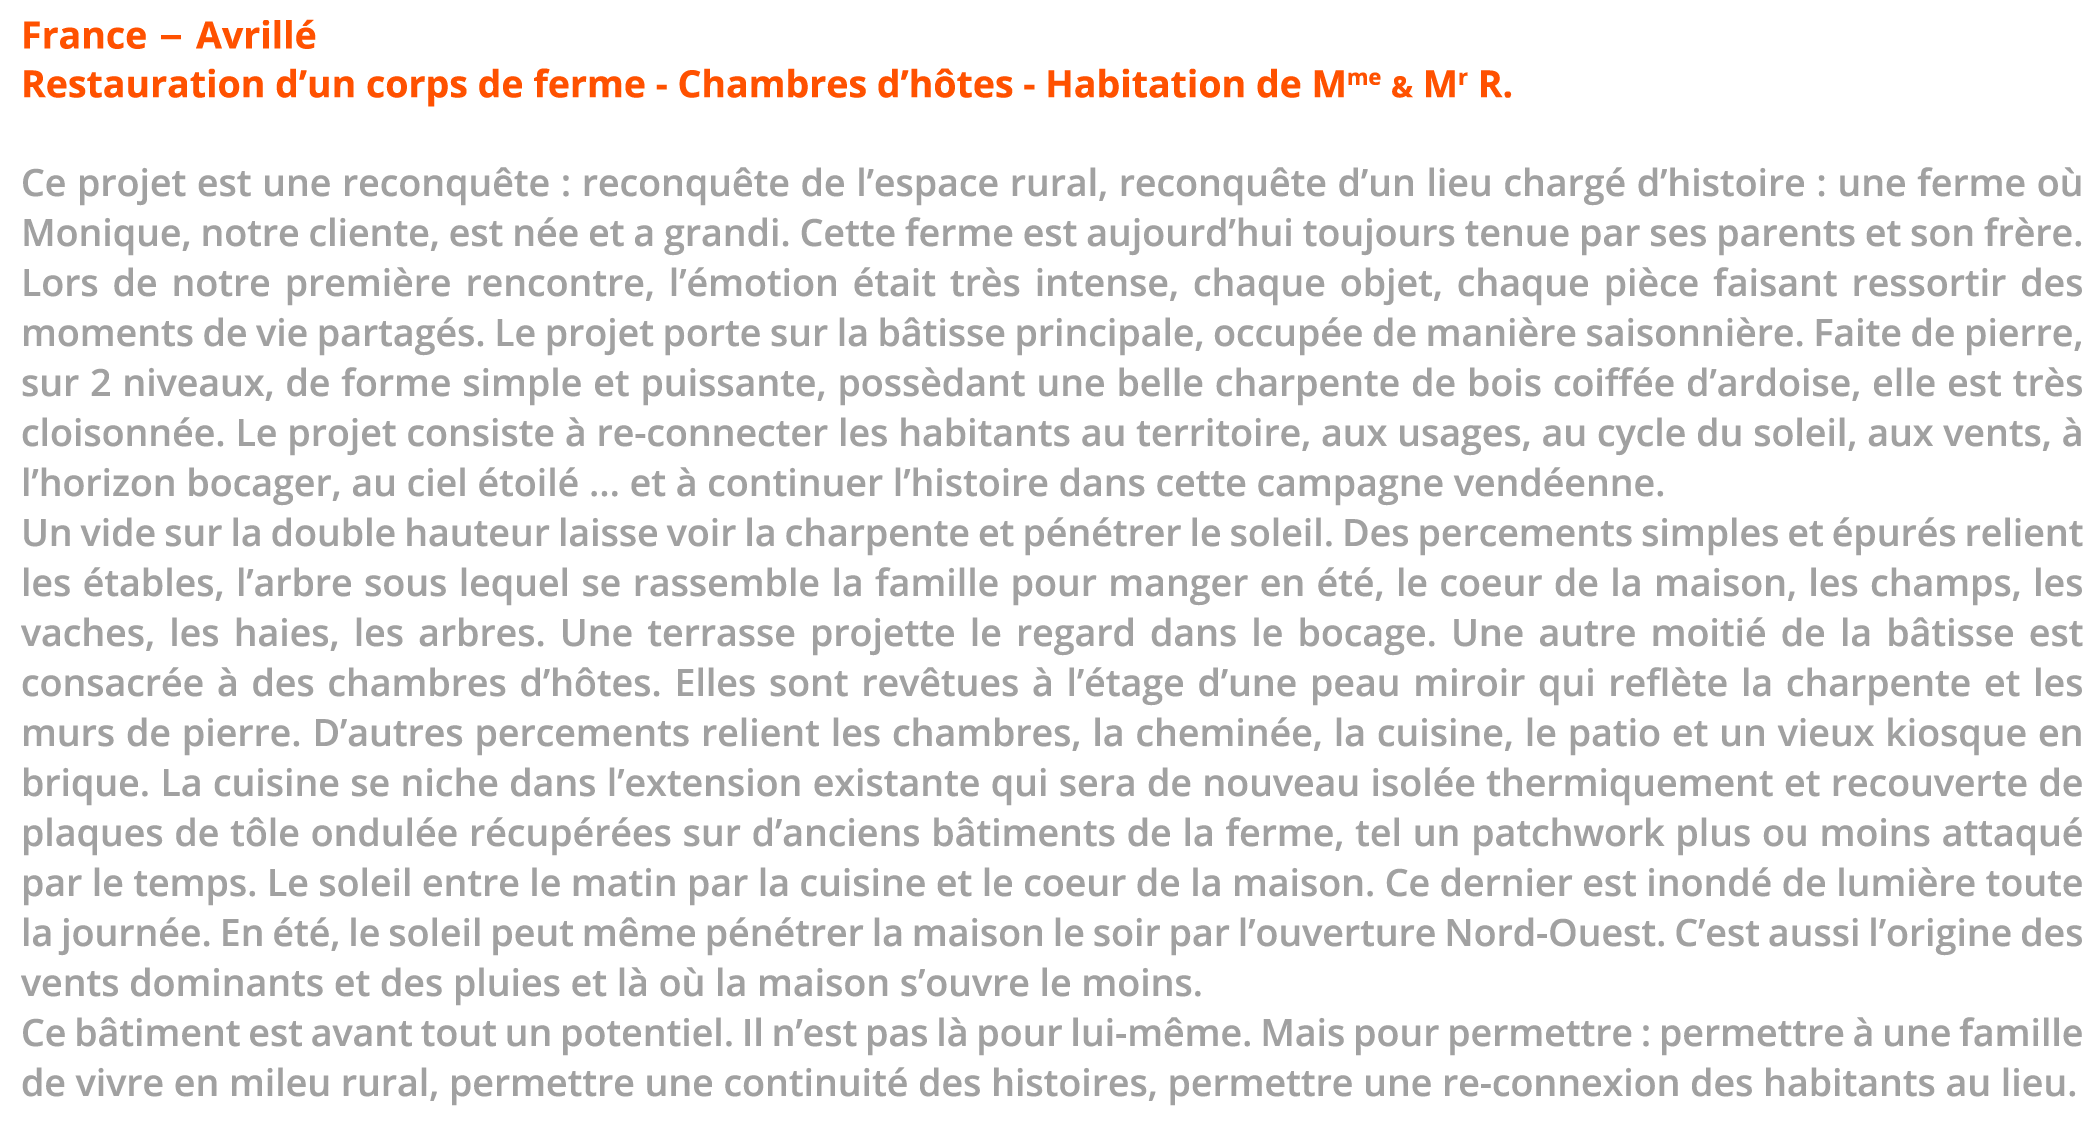 France-Avrille-Texte.png